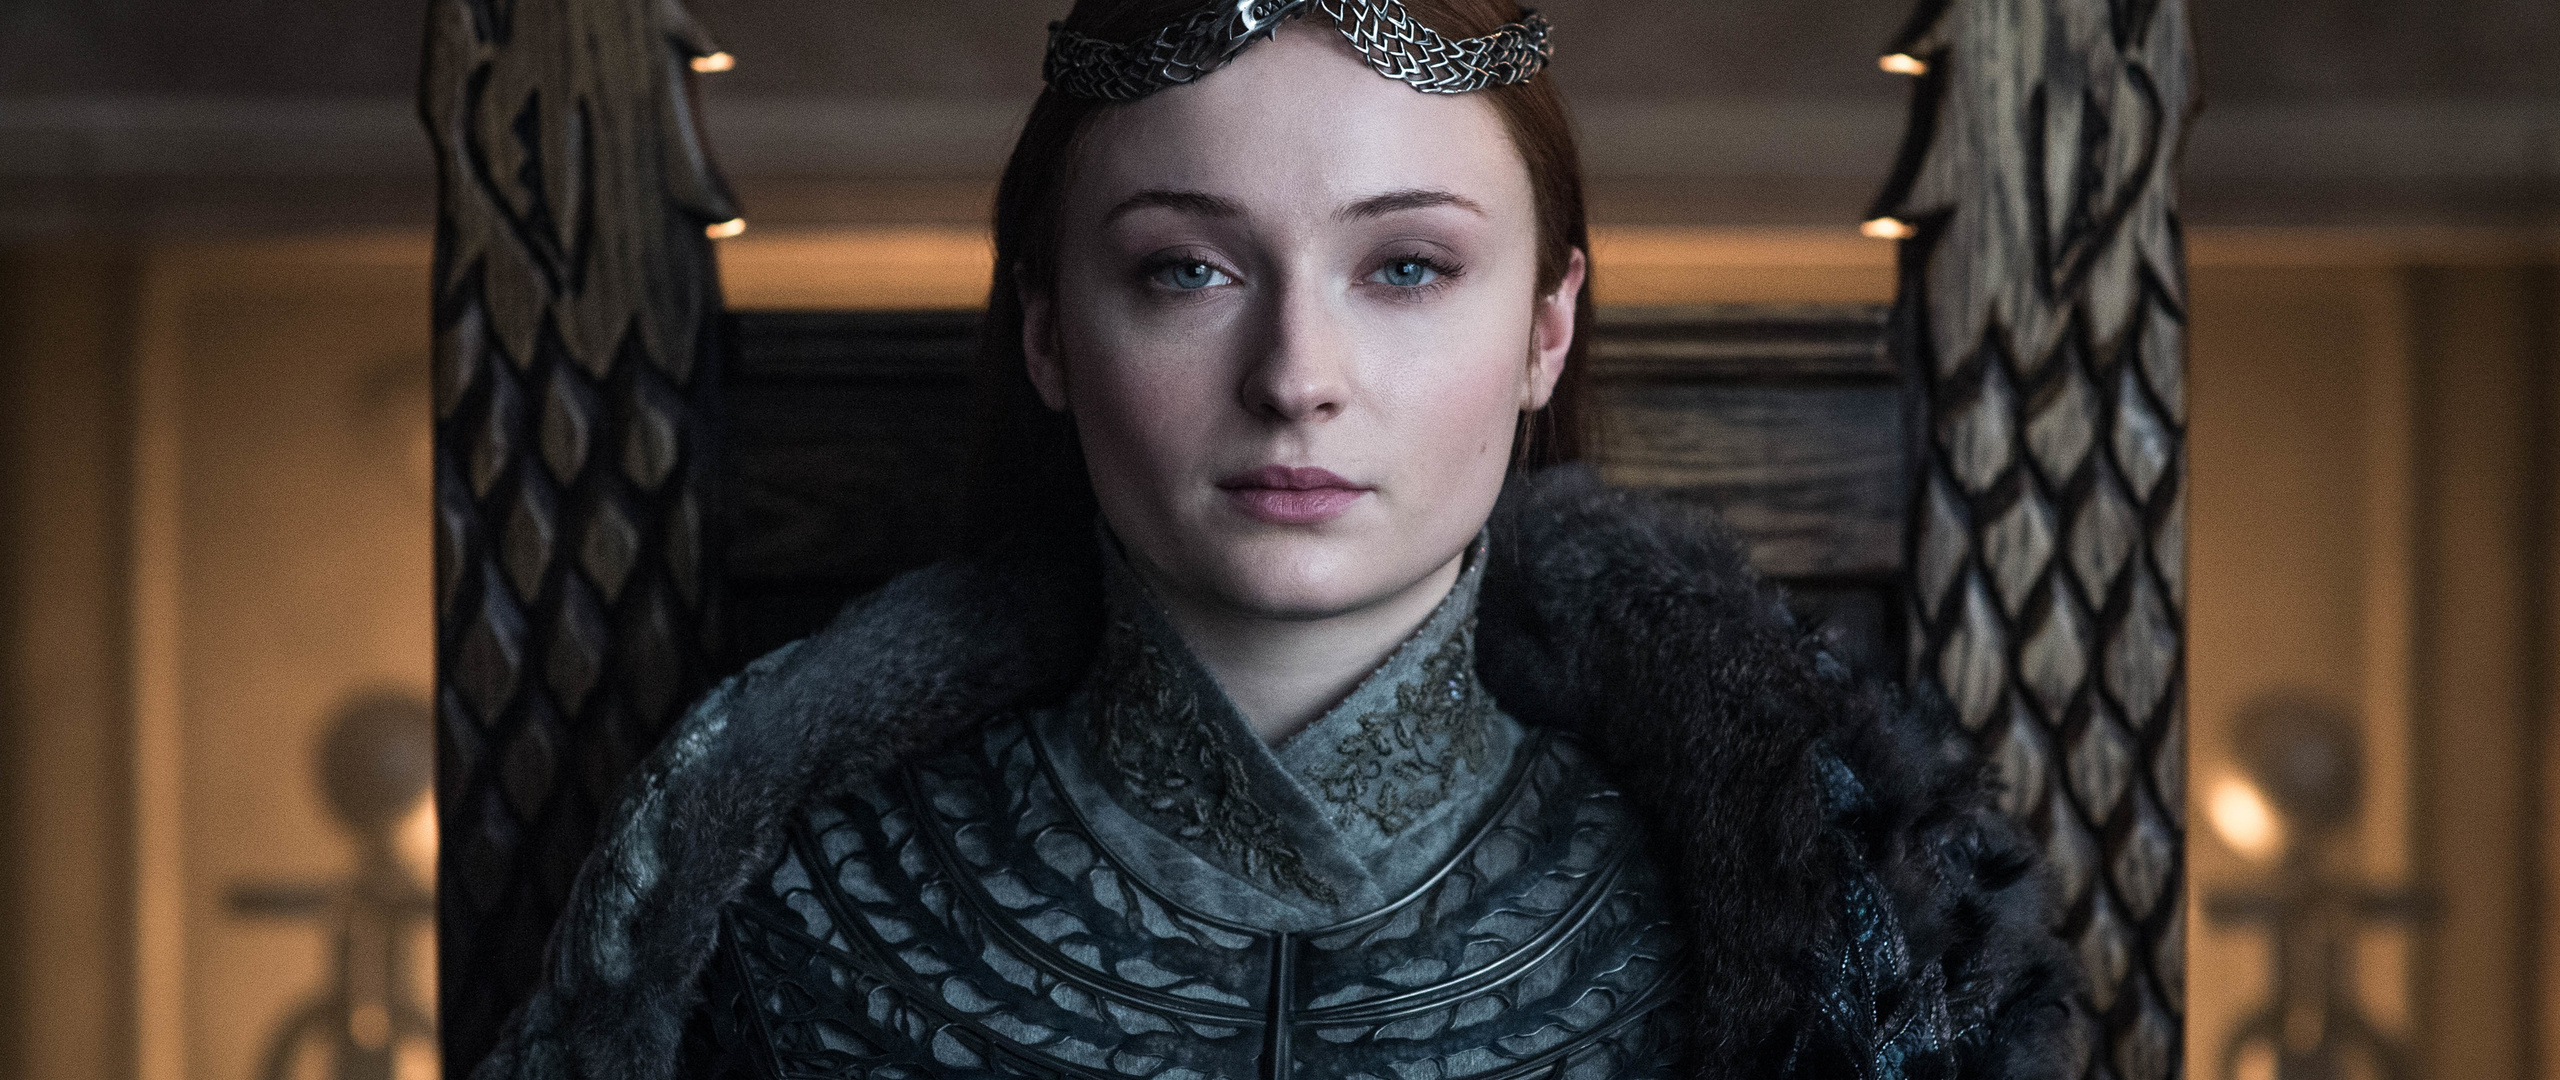 sansa-stark-game-of-thrones-season-8-43.jpg